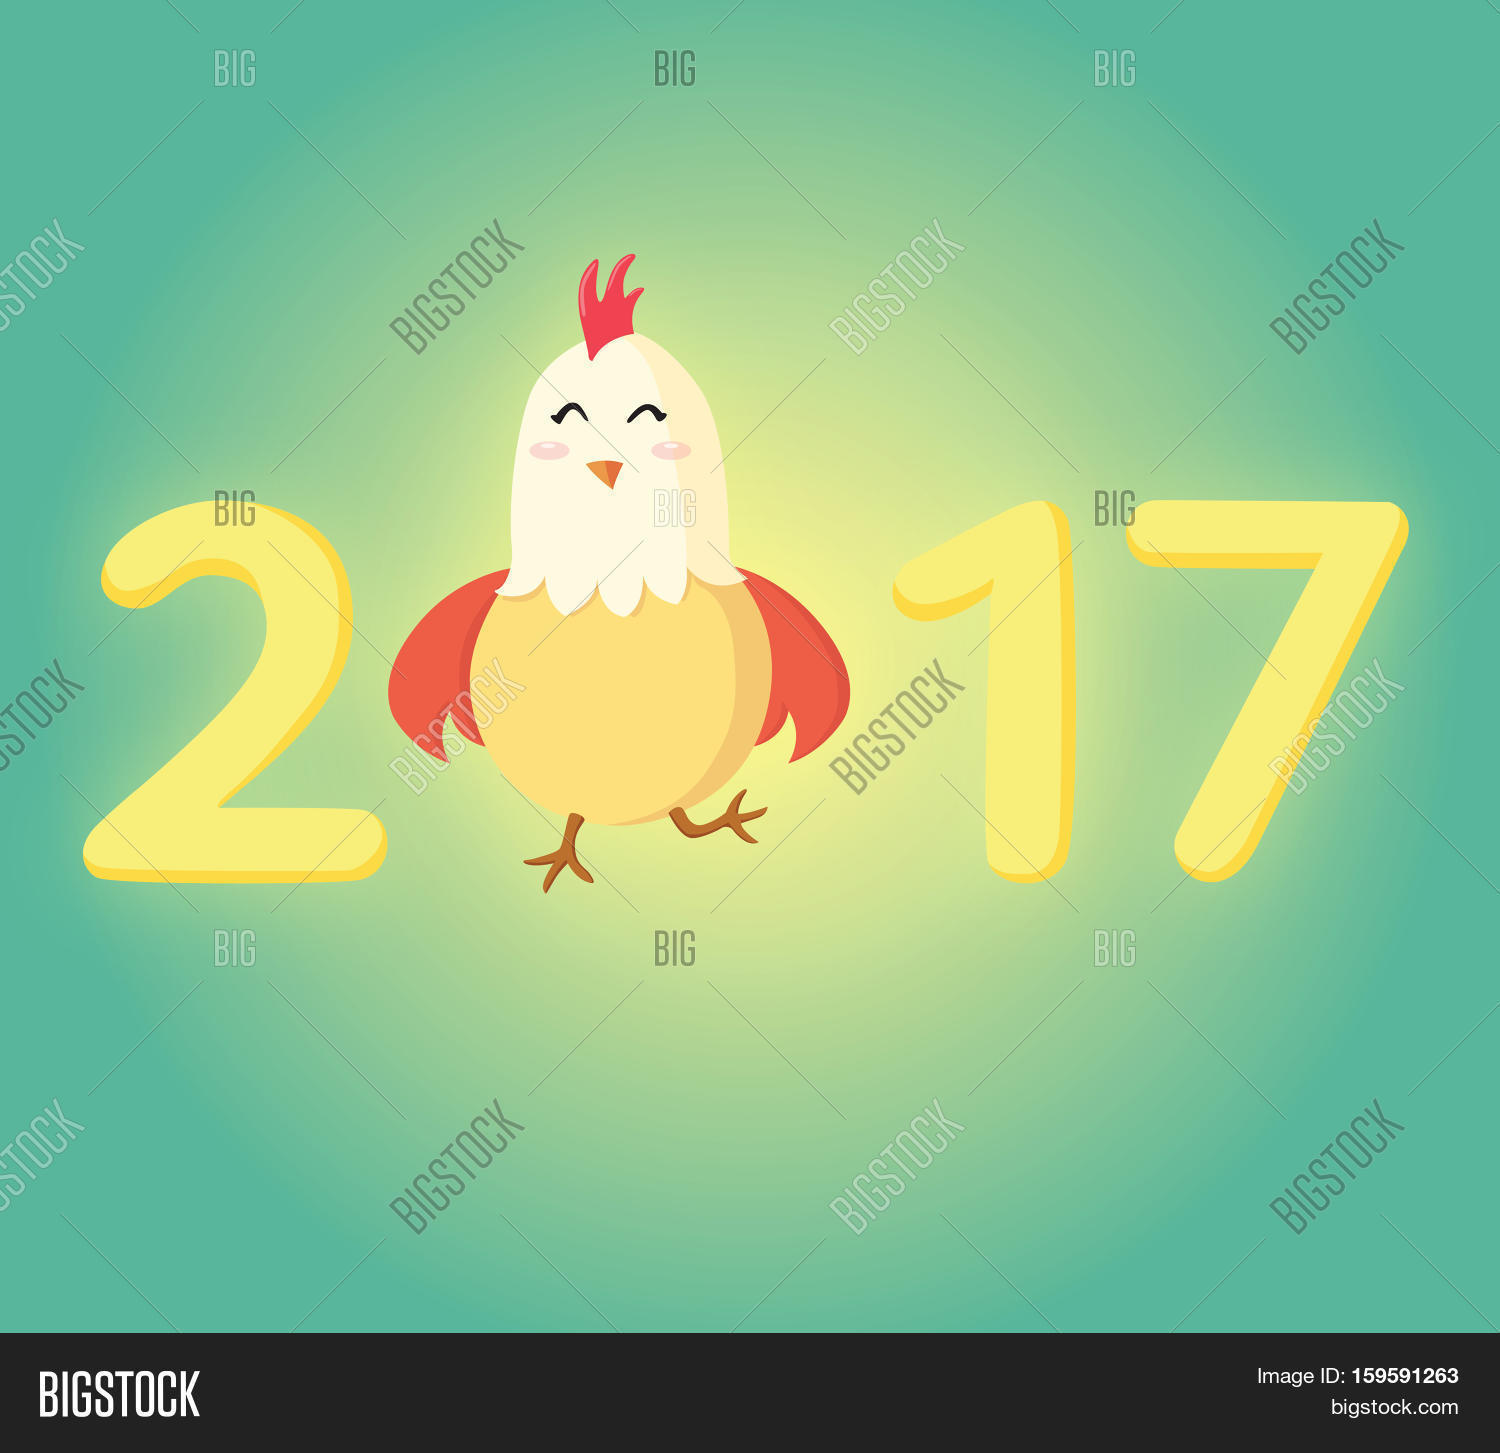 New year 2017 greeting pictures year of rooster happy chinese new year - Happy Rooster 2017 Chinese New Year Greeting Card Little Yellow Chick Standing As A Part